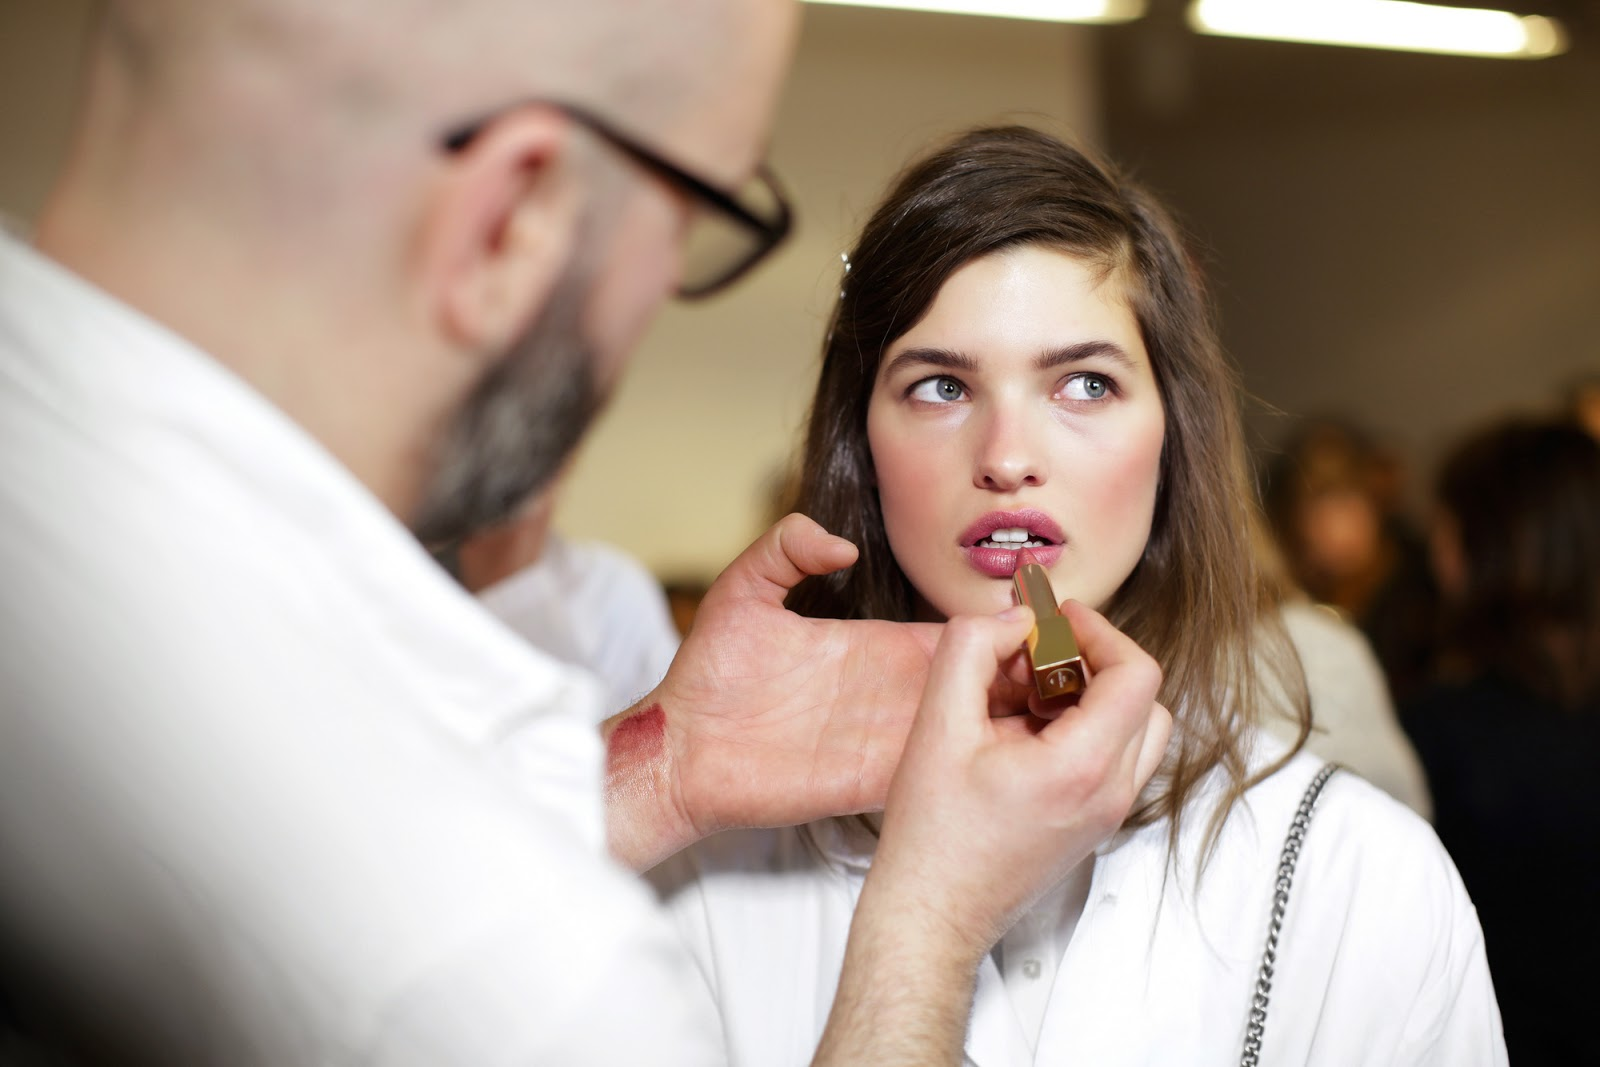 Michael Kors Showcases Sophisticated Beauty at New York Fashion Week for Fall 2015